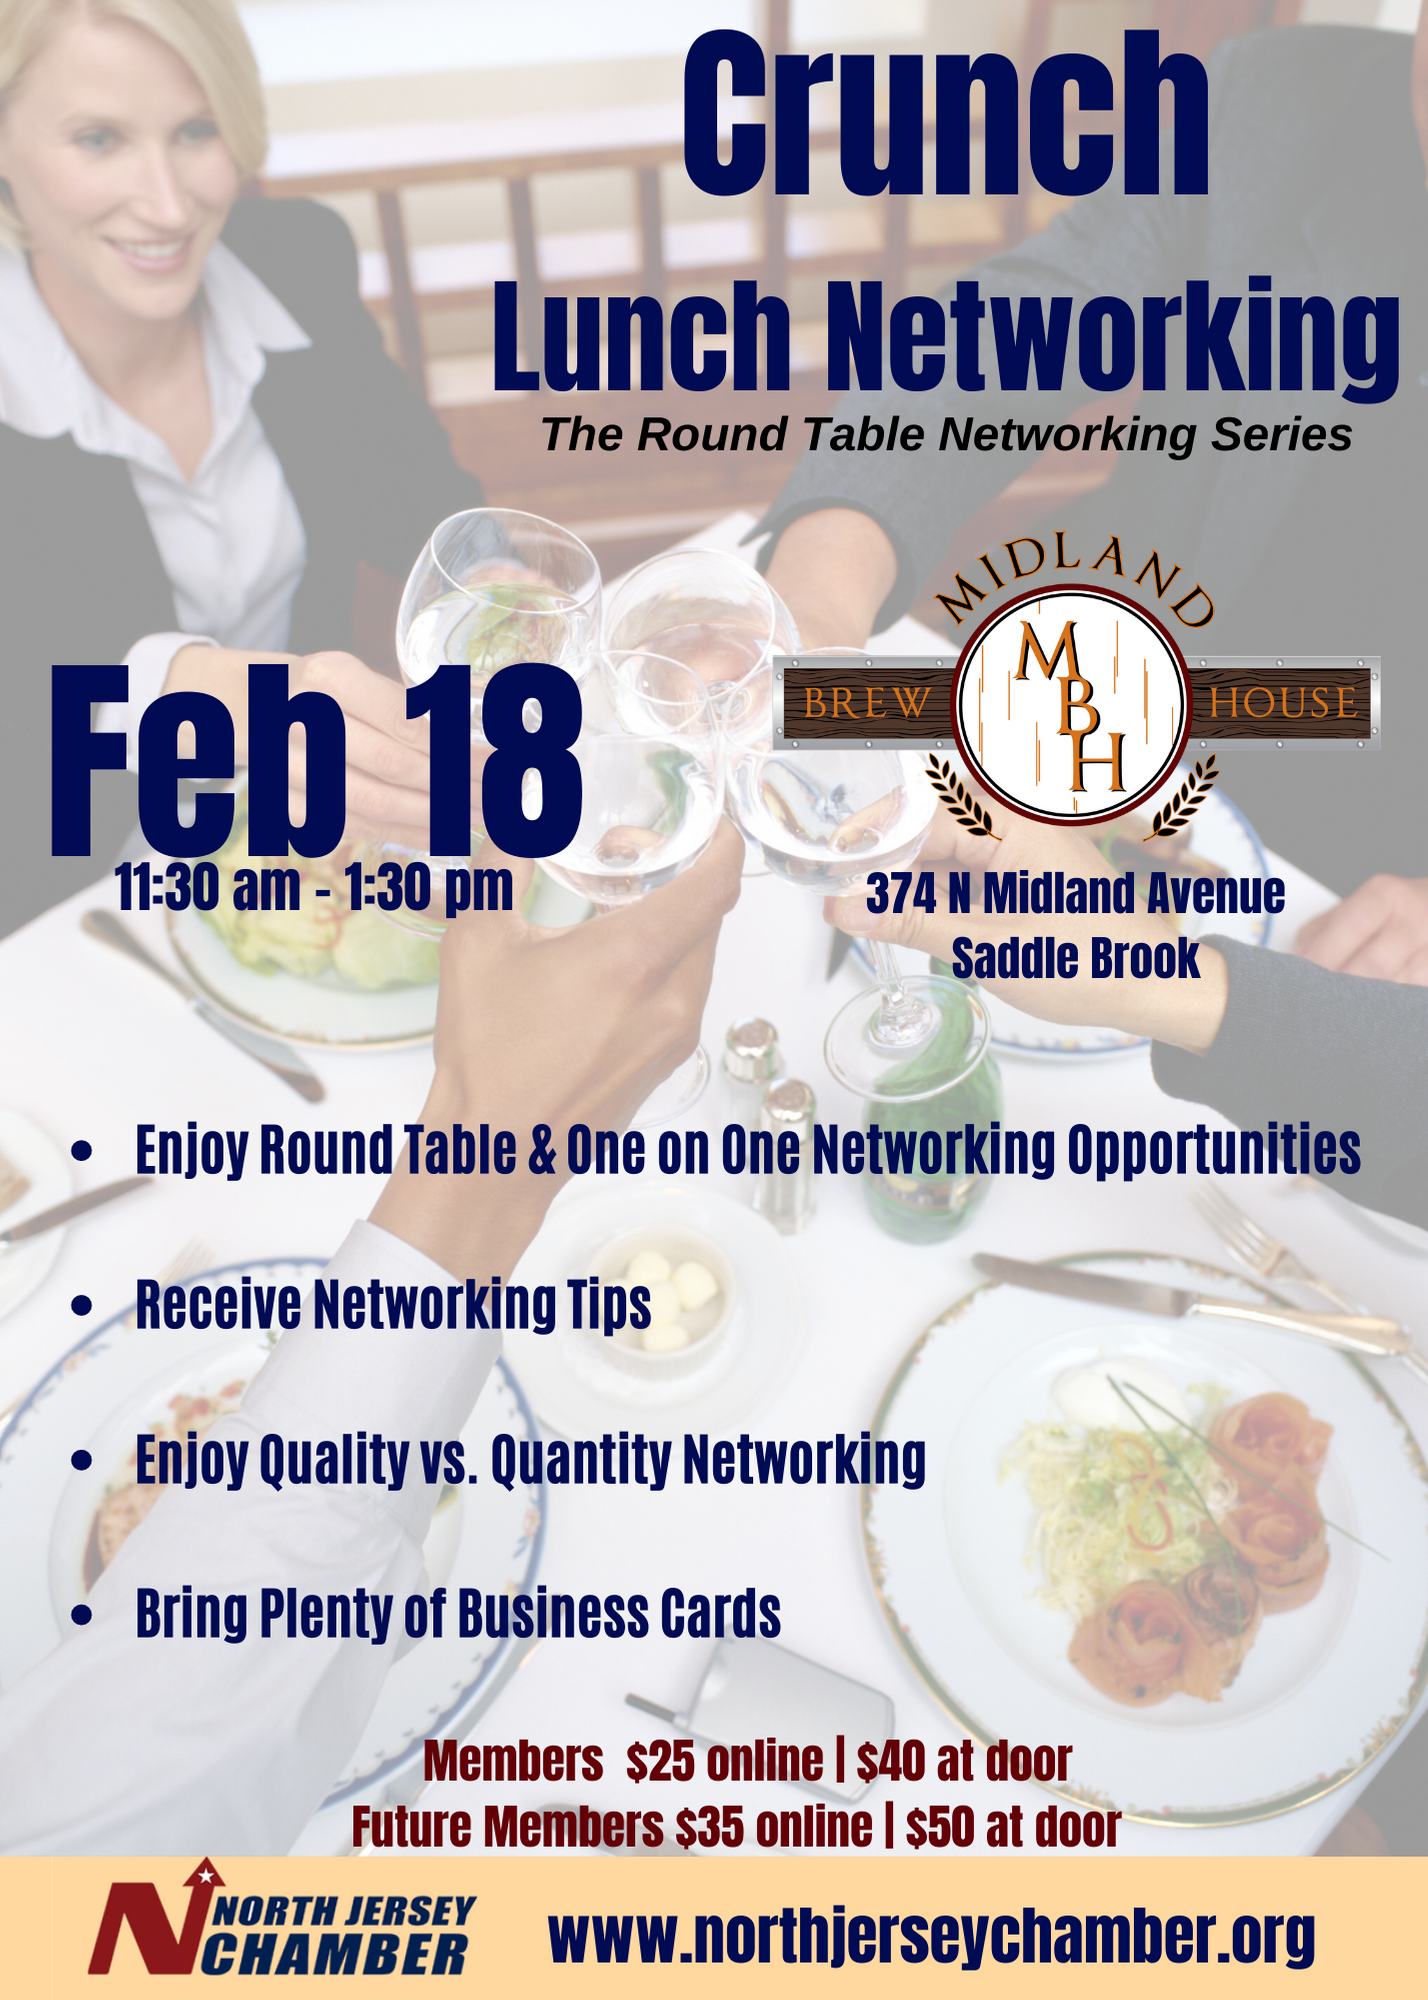 Crunch Lunch: The Round Table Networking Series